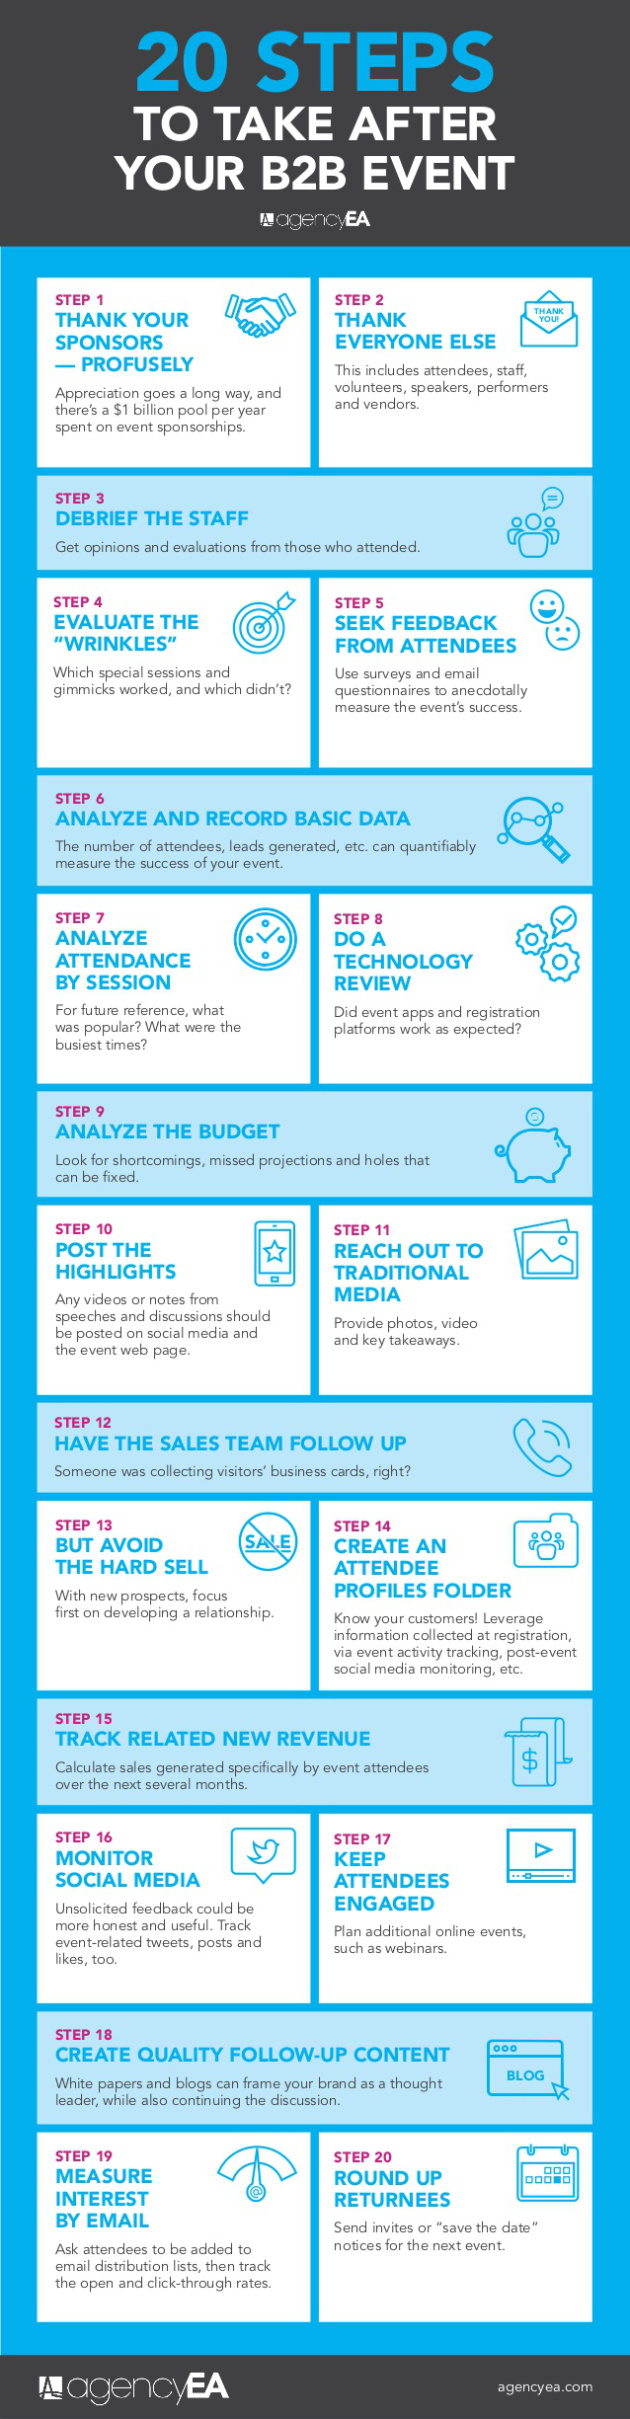 20 Steps to Take After Your B2B Event to Ensure Future Success